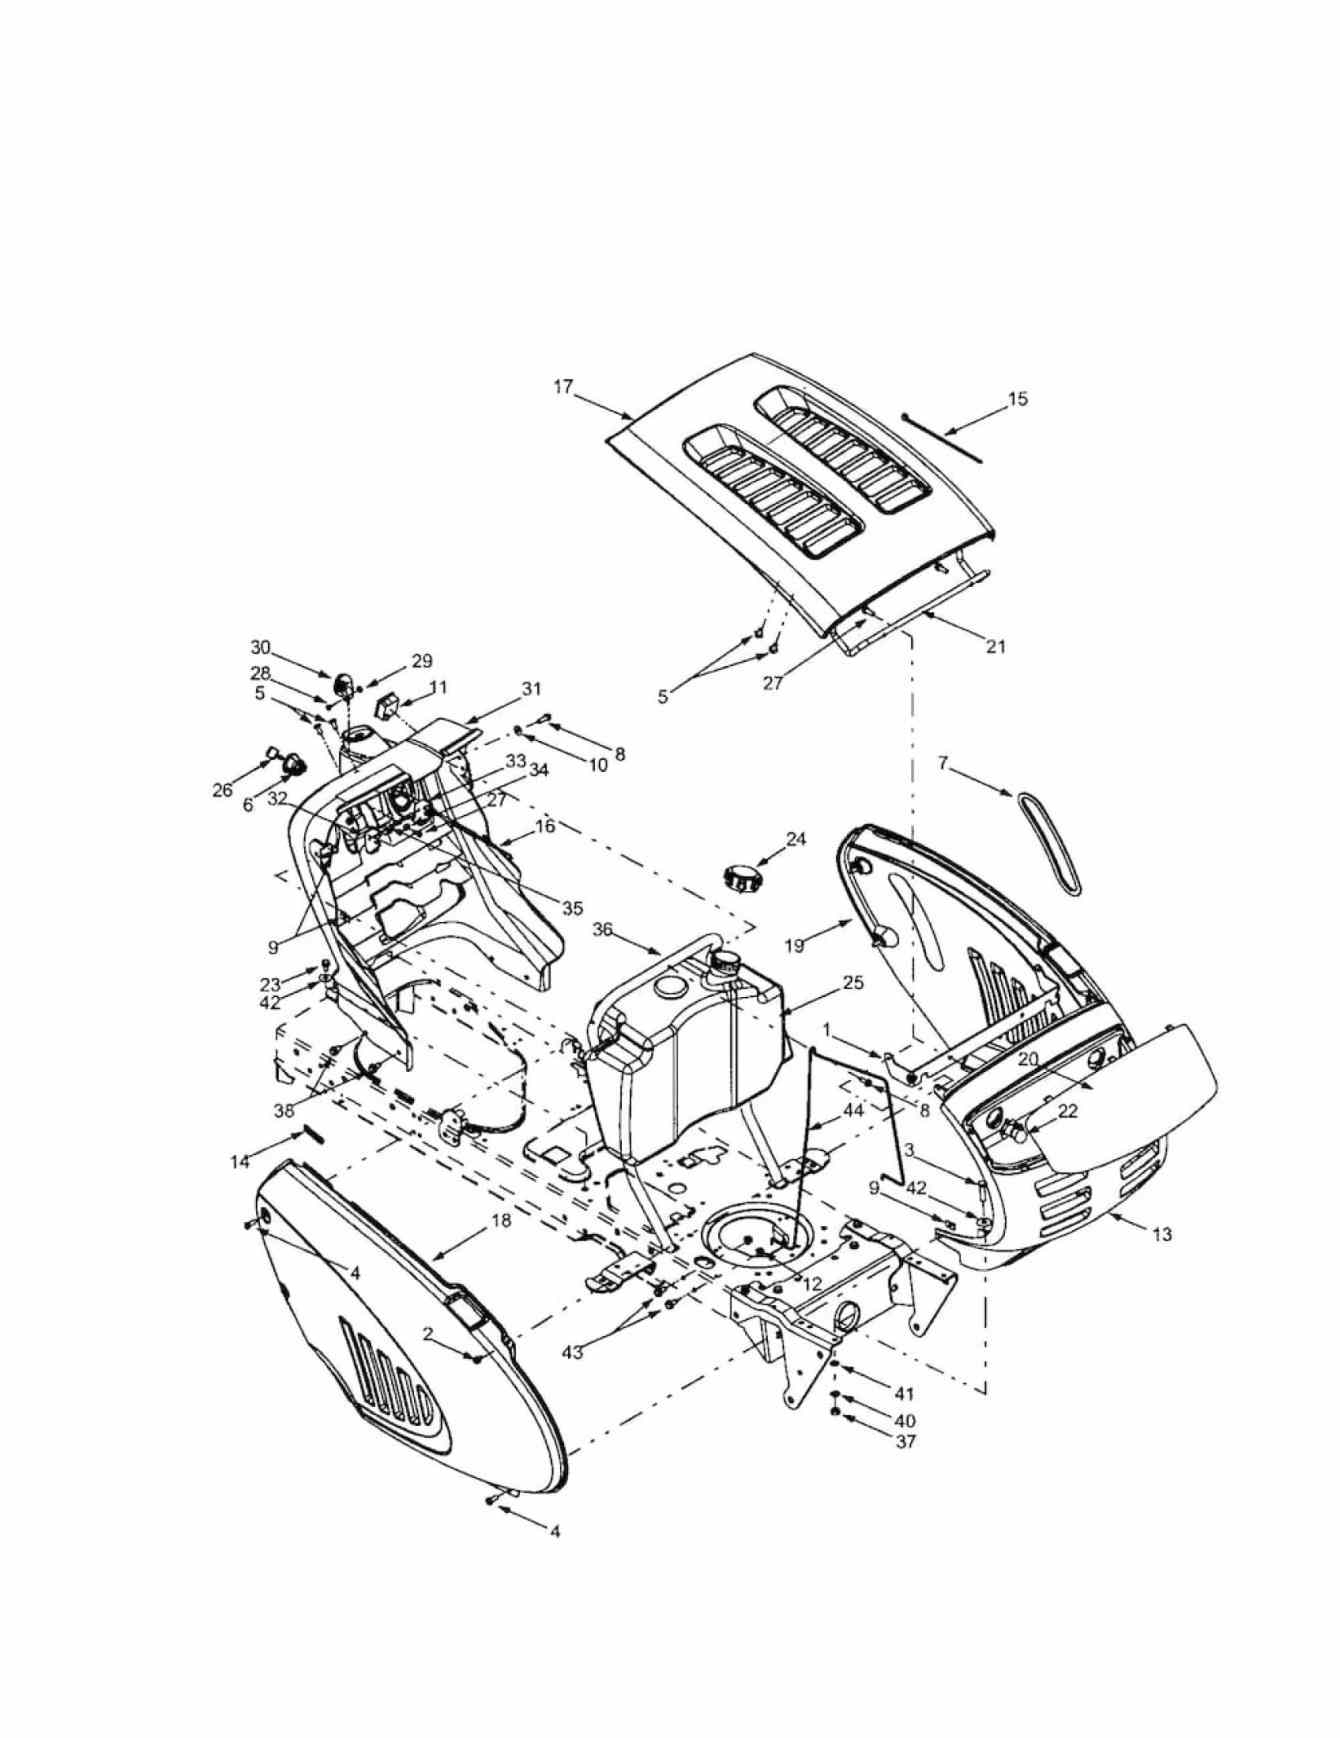 wiring diagram for snapper riding mower wiring diagram for